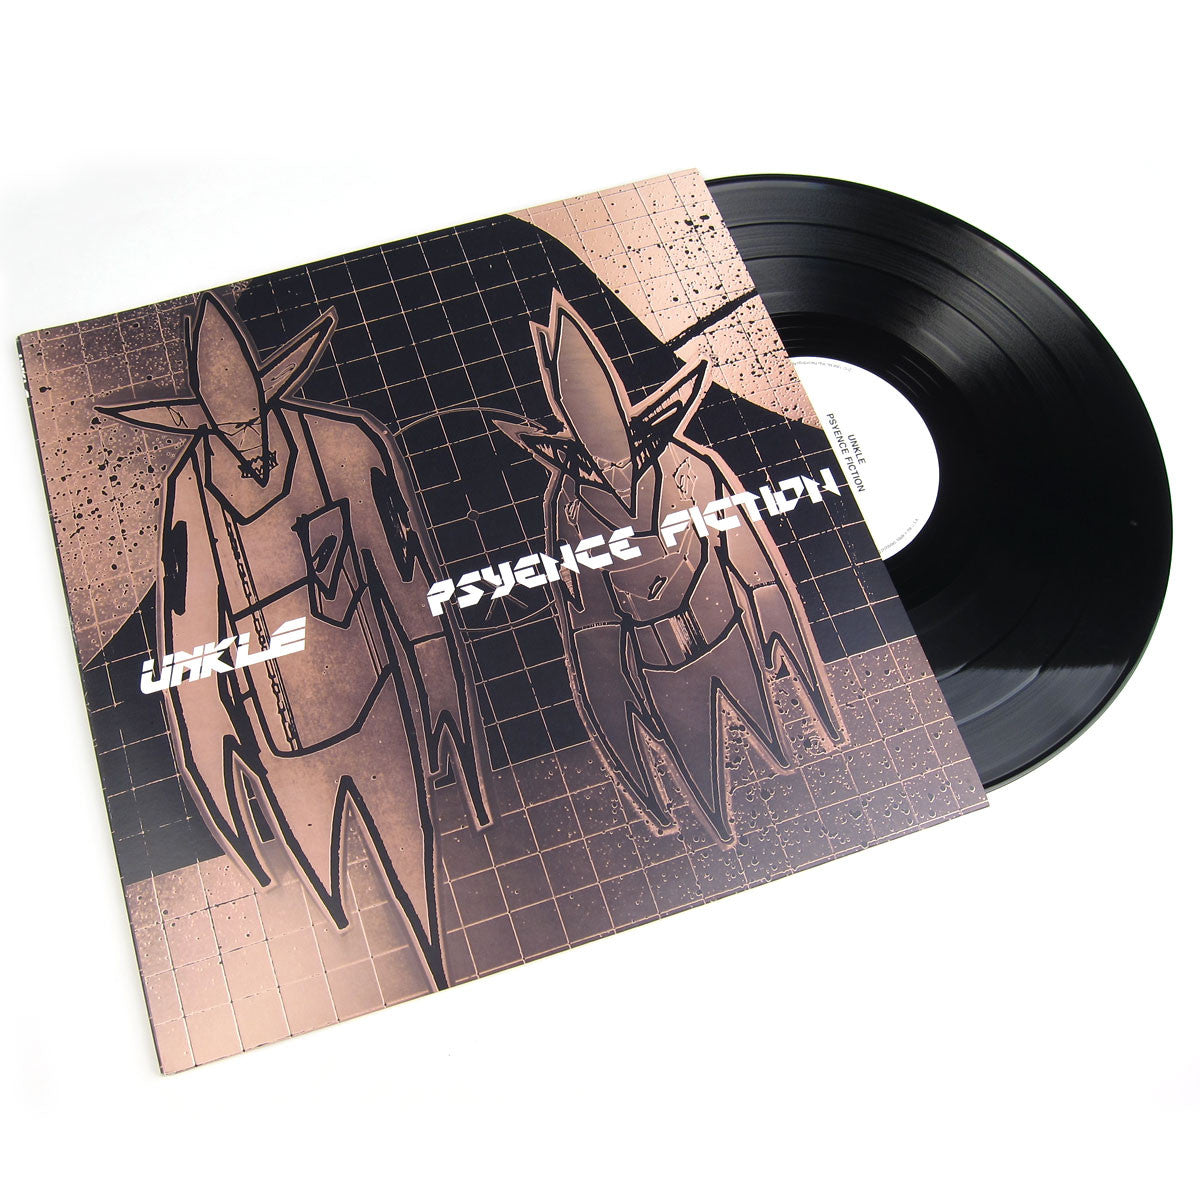 Unkle: Psyence Fiction Vinyl 2LP